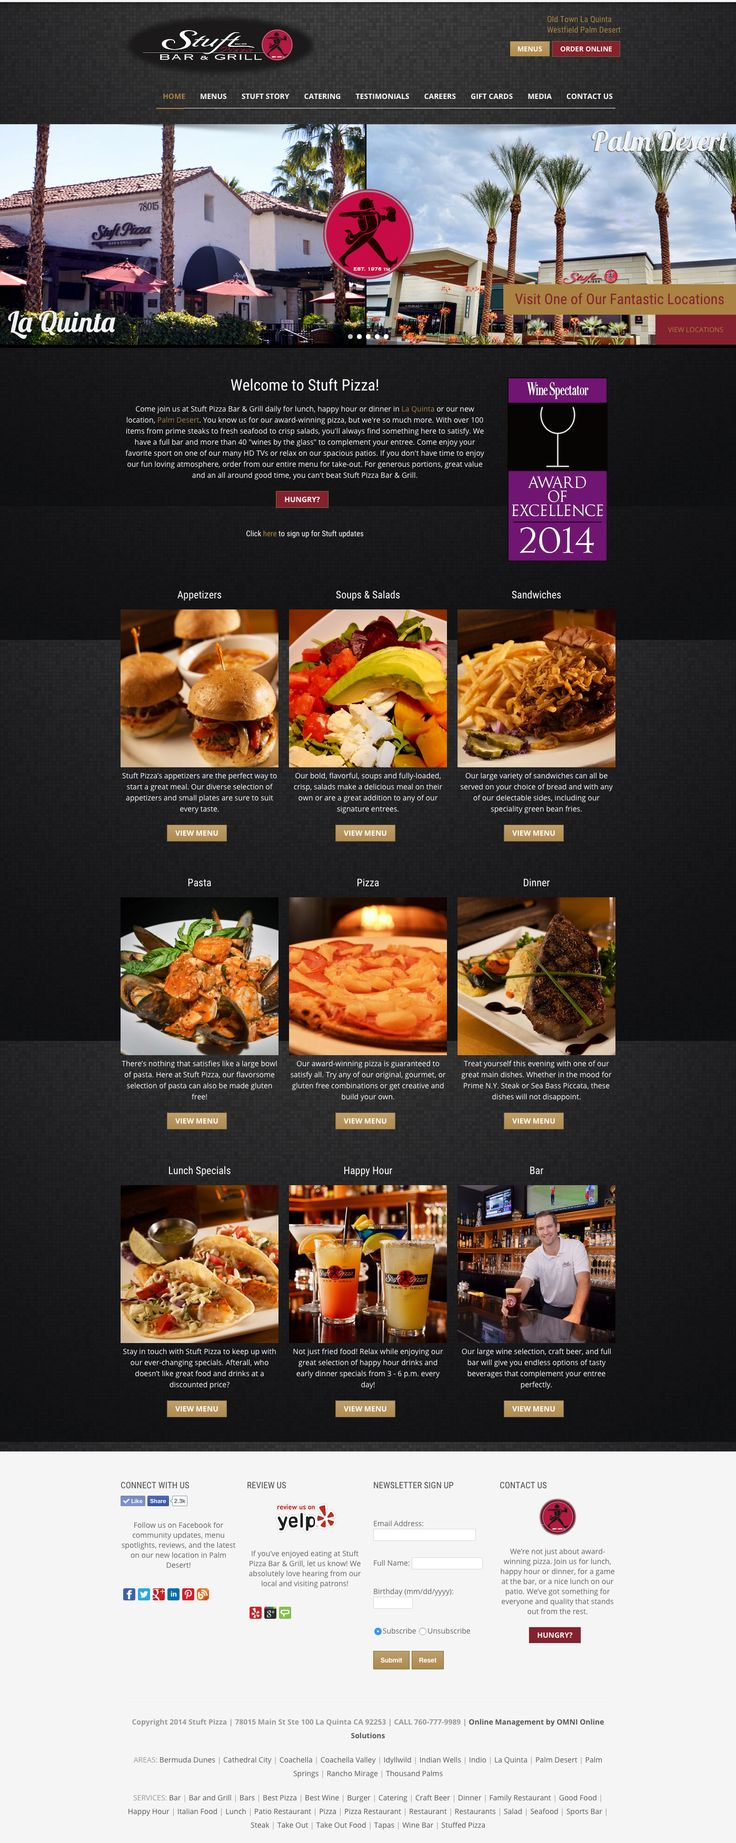 Web design for the restaurant Stuft Pizza Bar and Grill, driving customers to locations in Palm Desert & La Quinta.